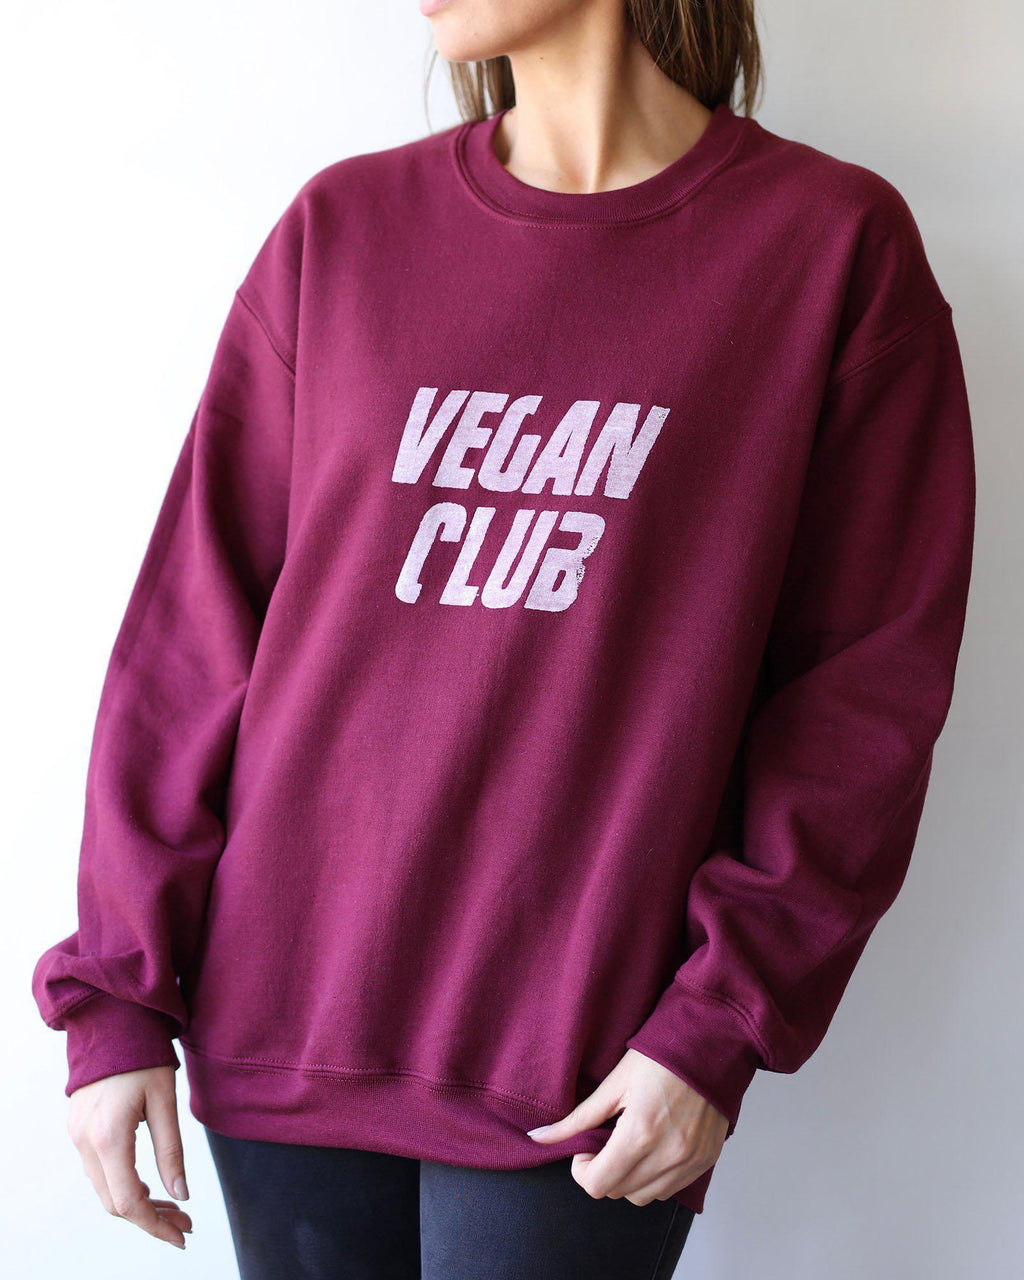 Vegan Club Unisex Sweatshirt - Maroon